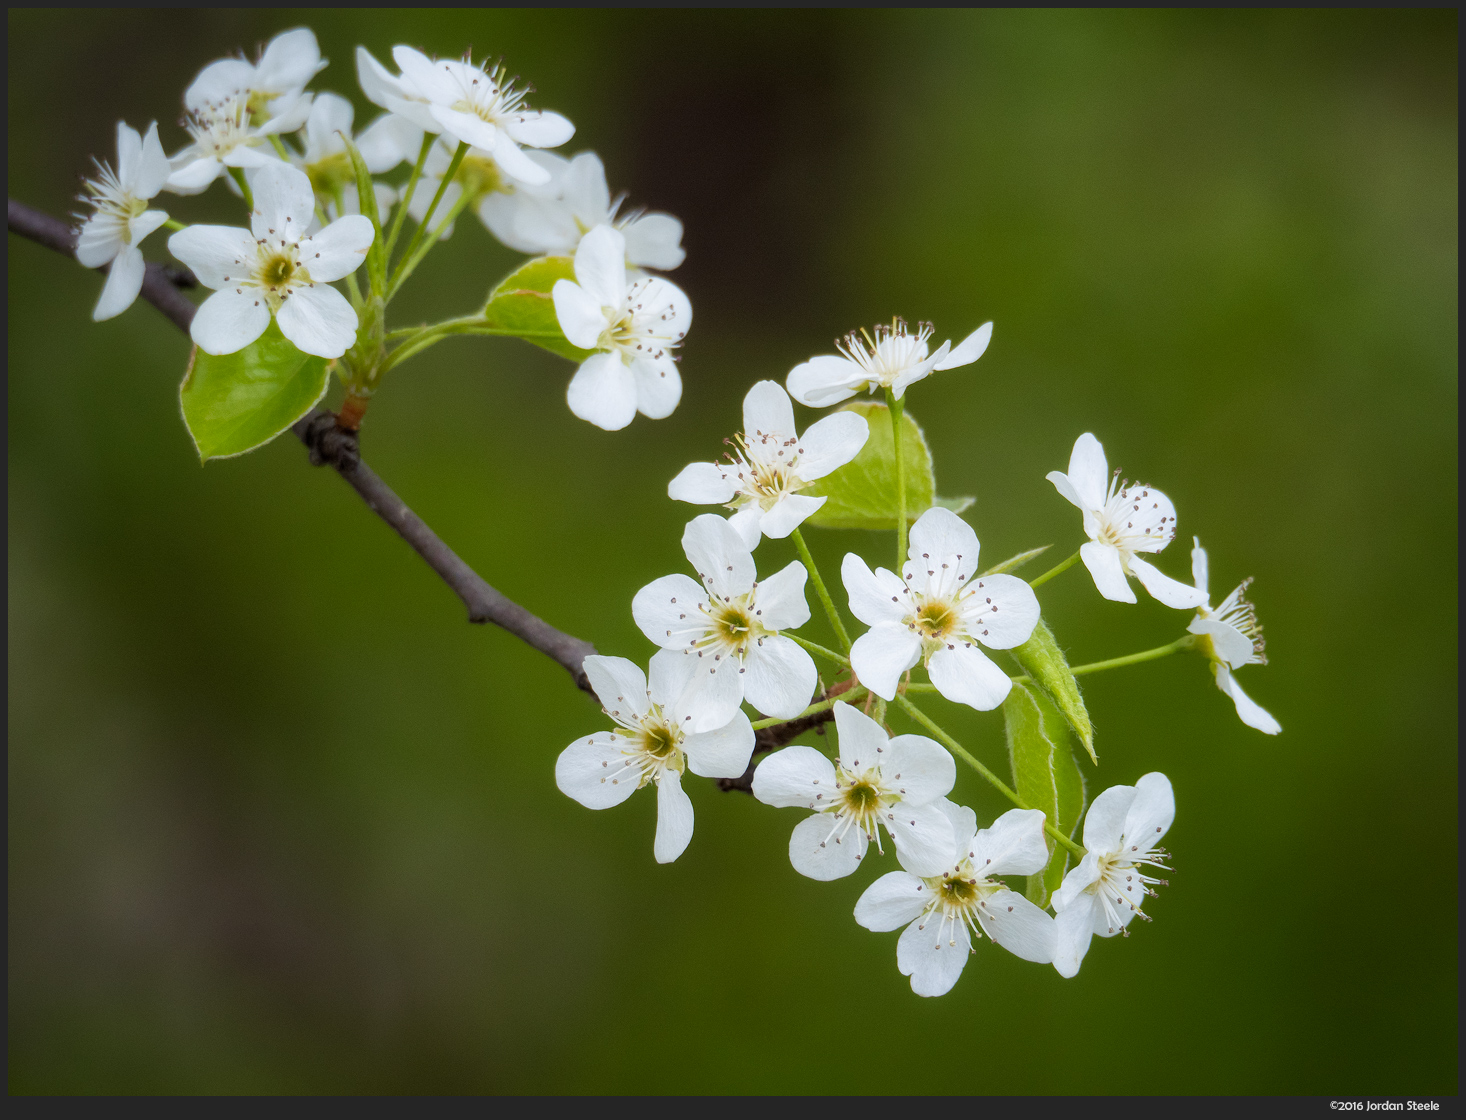 Blossoms - Olympus Pen-F with Olympus 60mm f/2.8 @